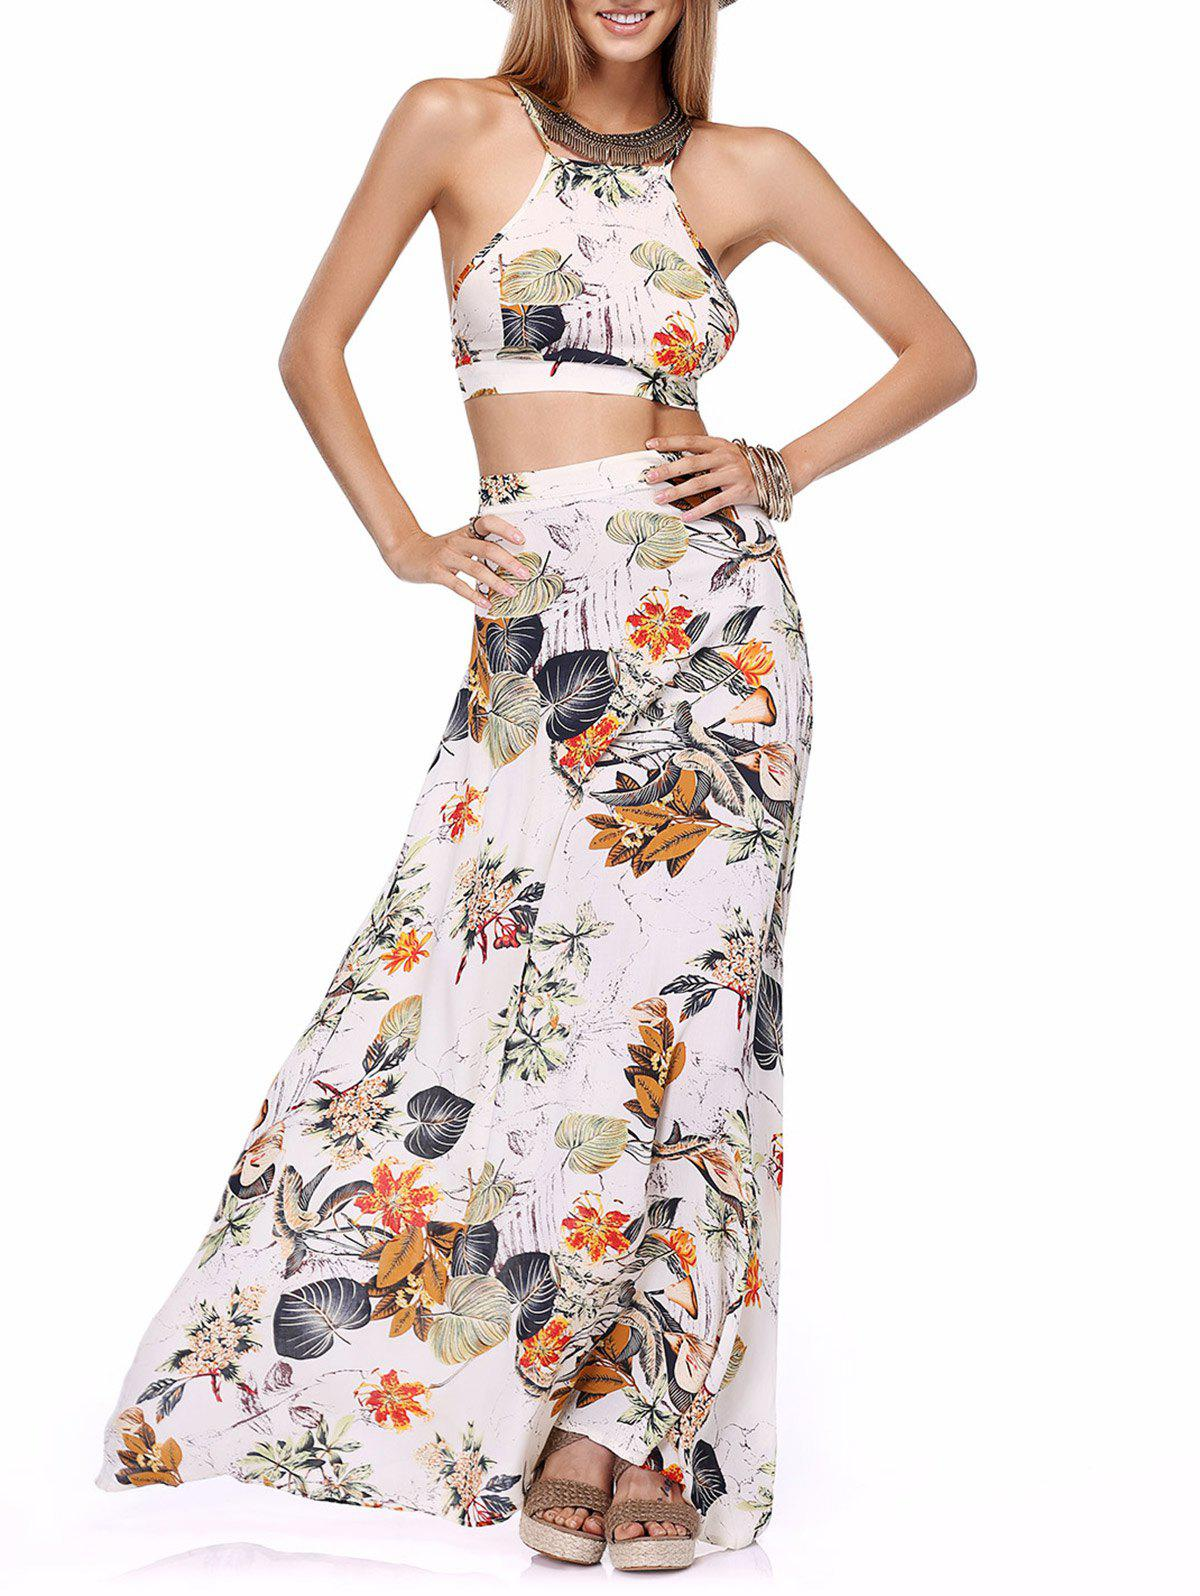 Back Lace-Up Cross Crop Top and High-Waist Maxi Skirt Twinset - WHITE L